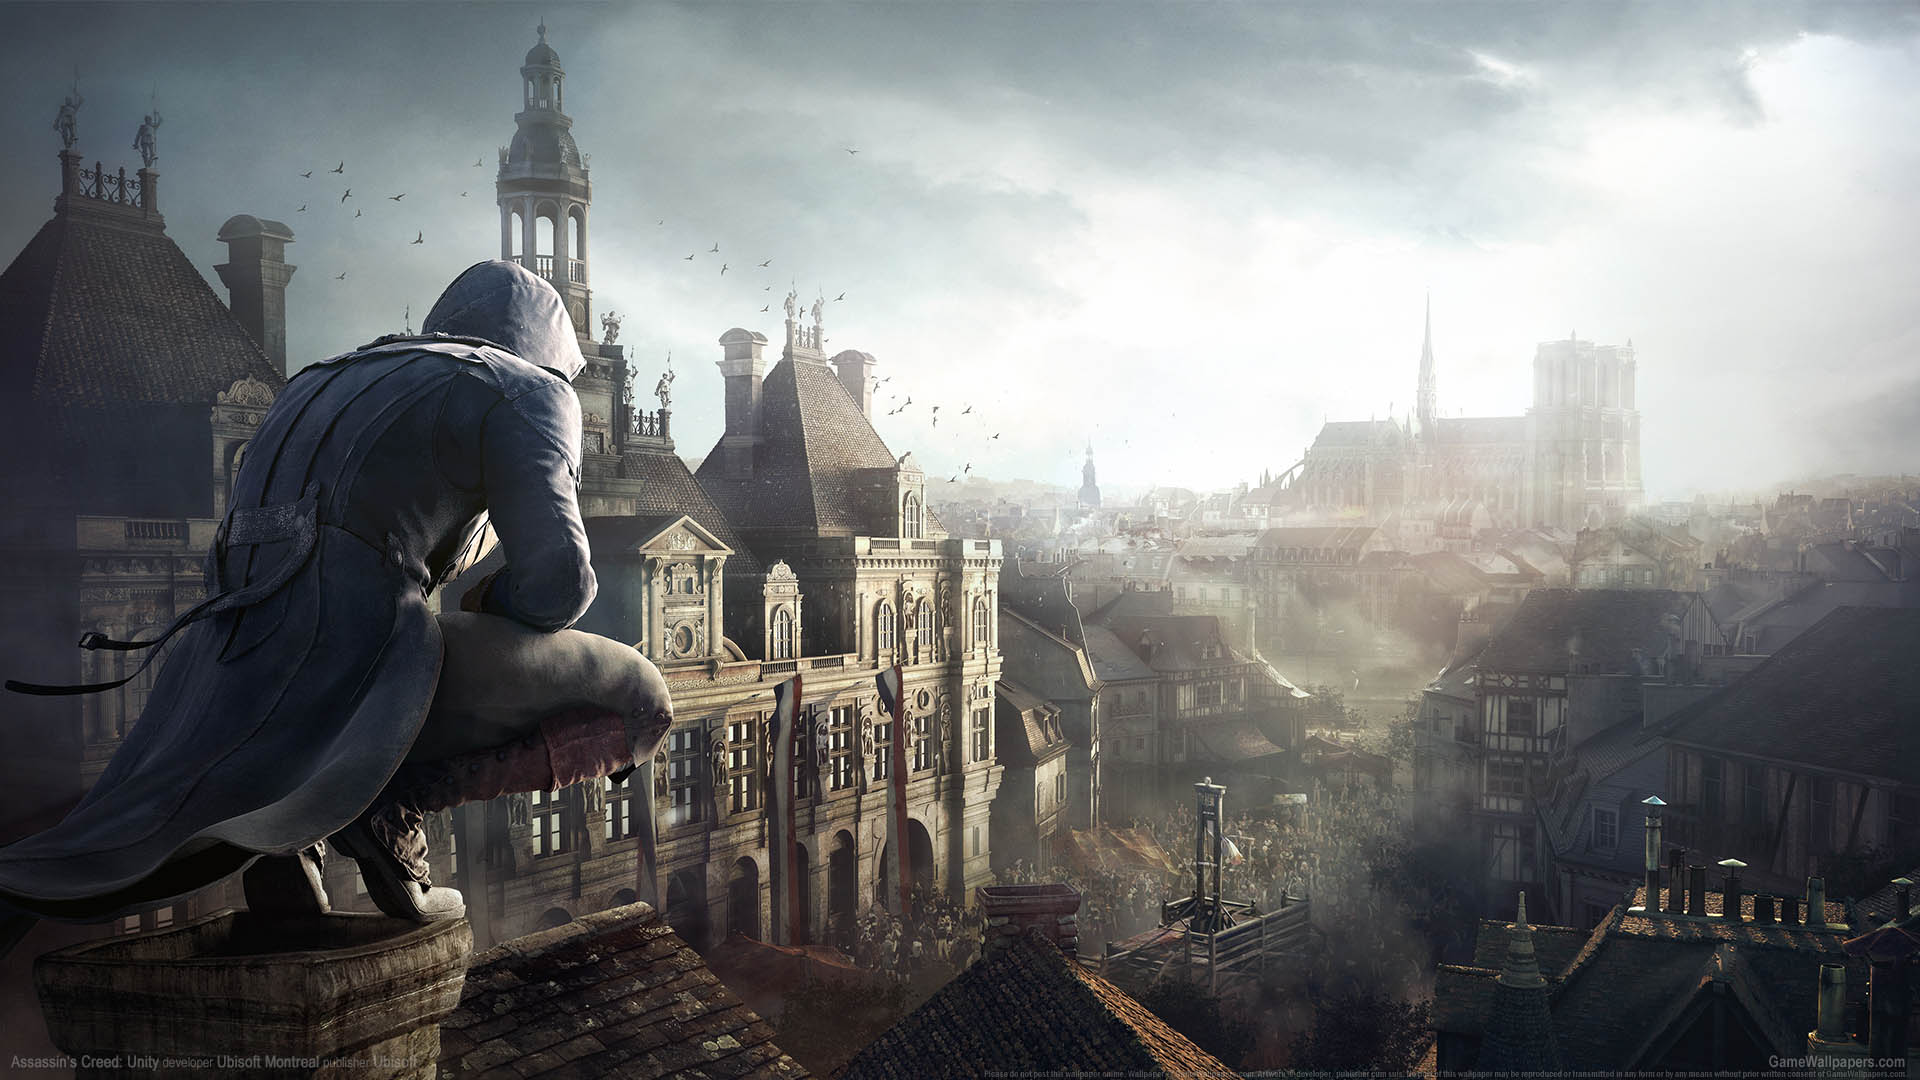 Assassin's Creed: Unity Hintergrundbild 13 1920x1080